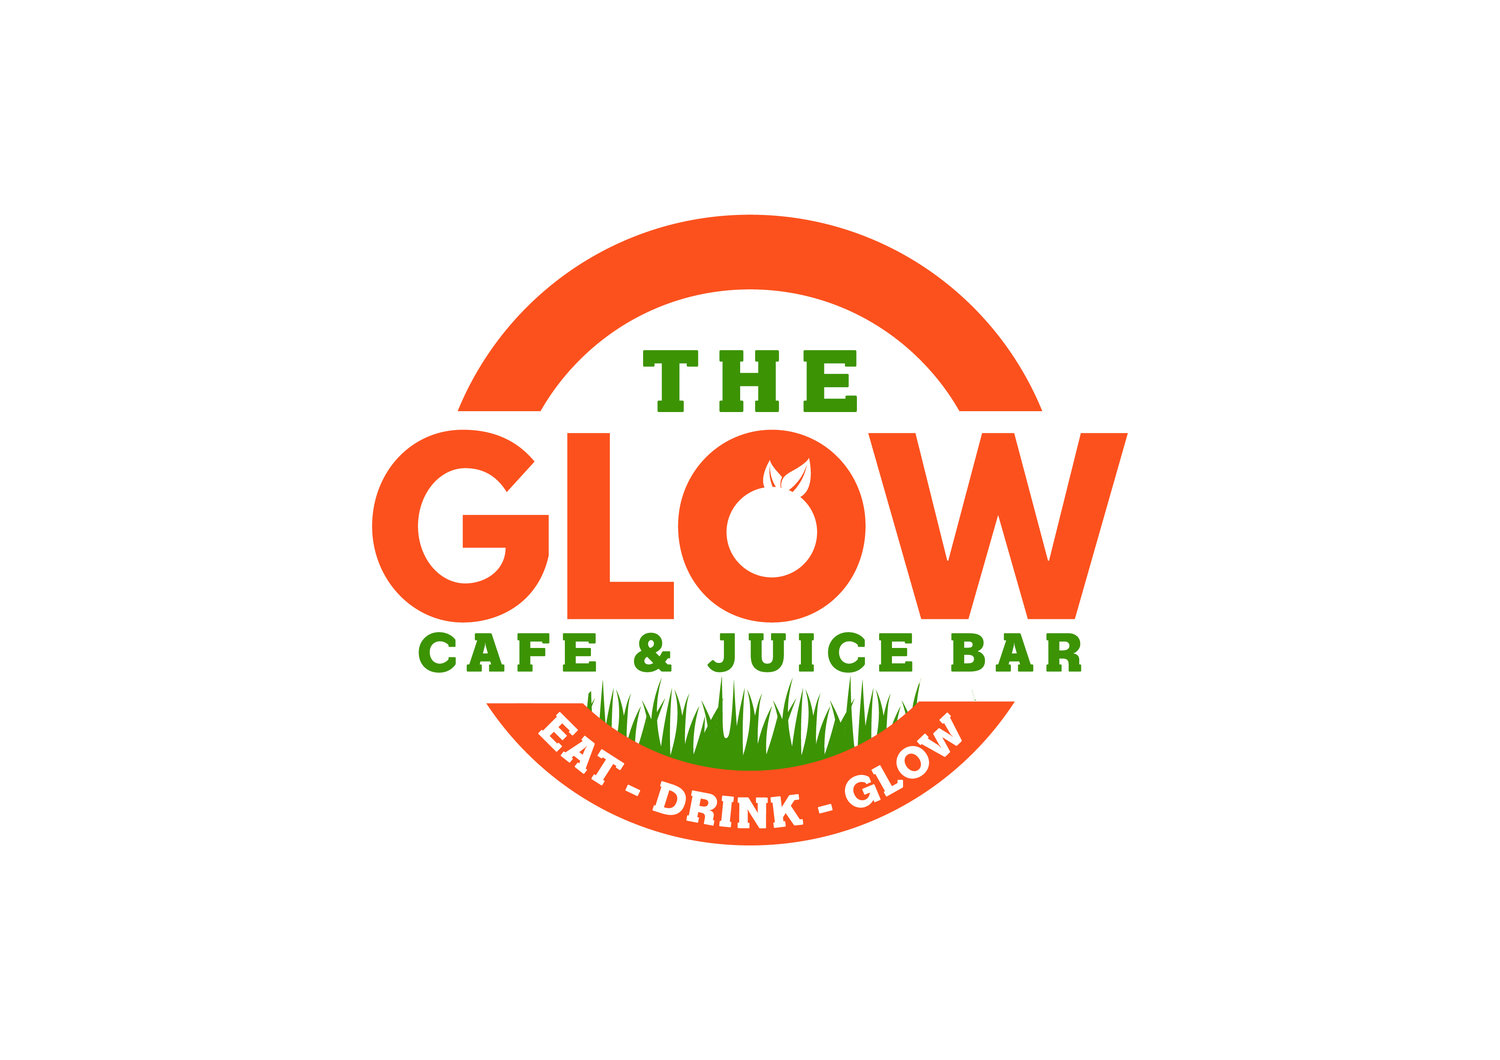 The Glow Cafe & Juice Bar